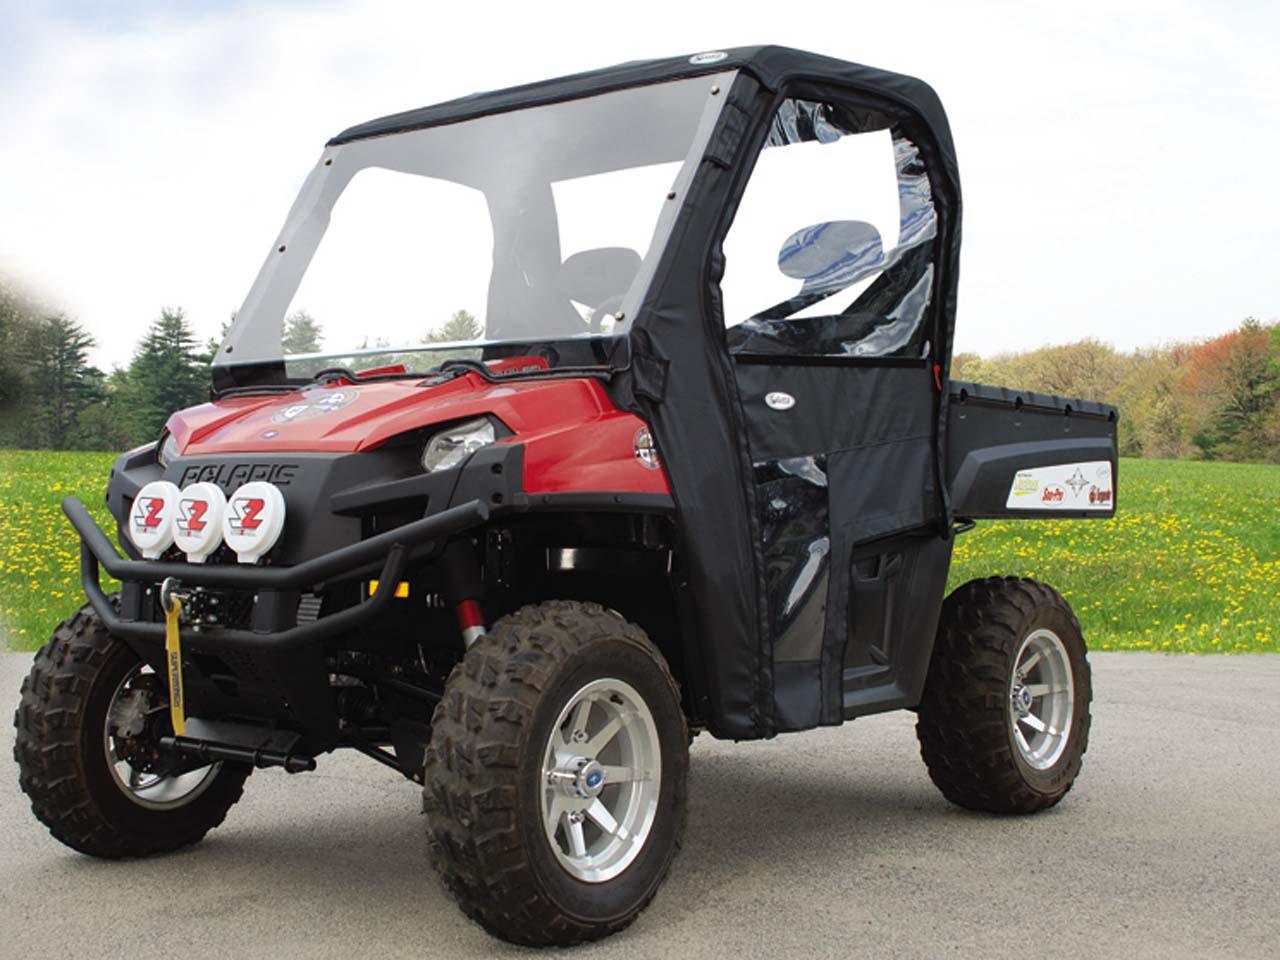 Curtis Introduces New Pathpro Soft Cab For Yamaha Rhino